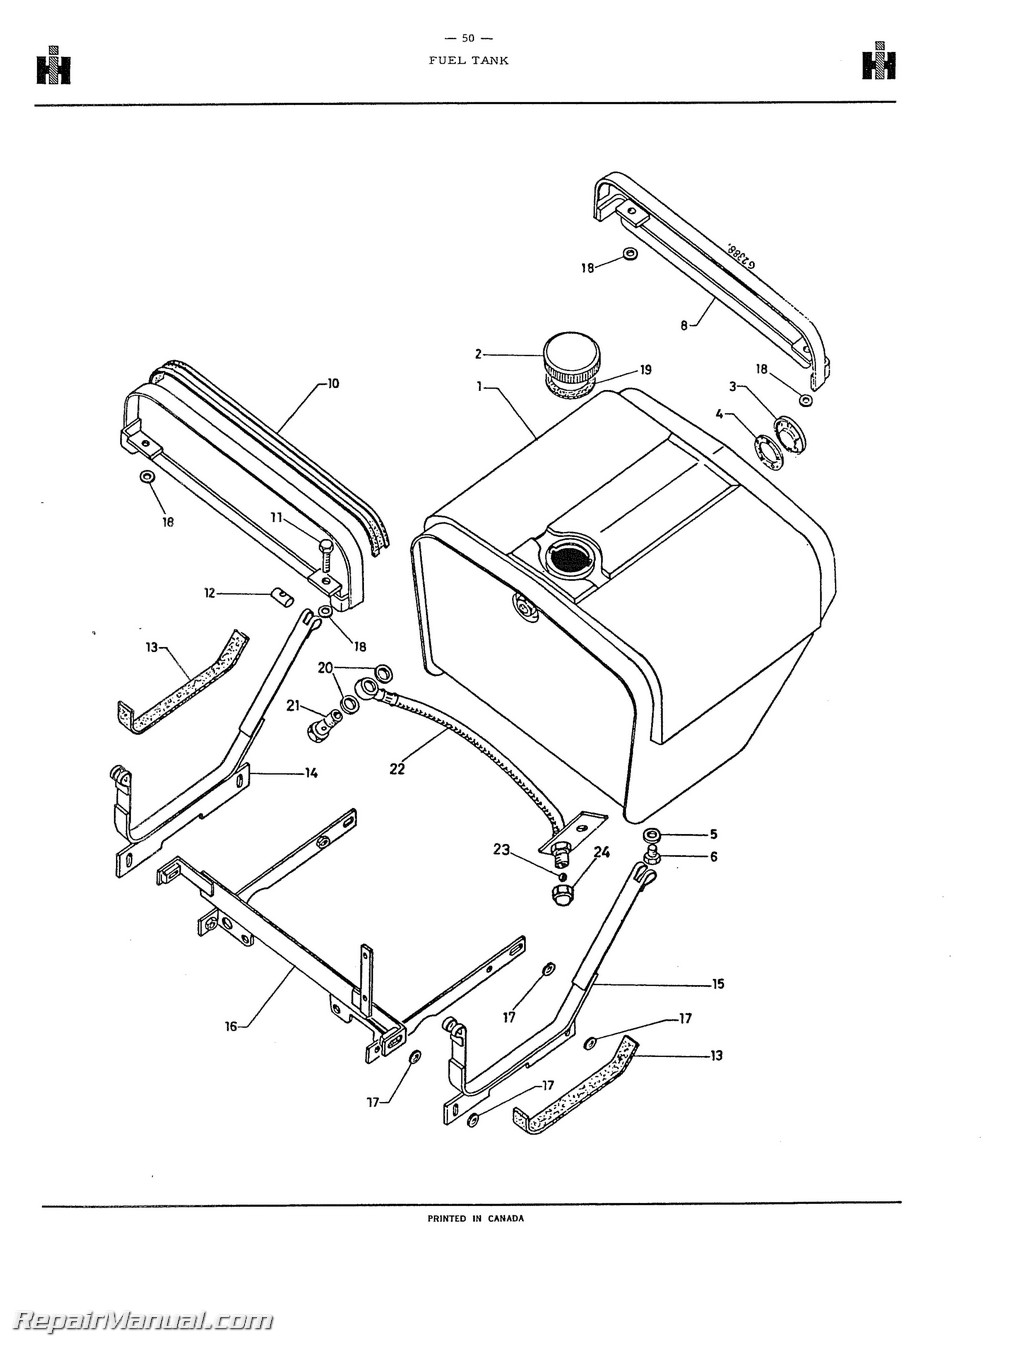 international harvester 624 724 diesel front loader parts international harvester 624 724 diesel front loader parts manual page 3